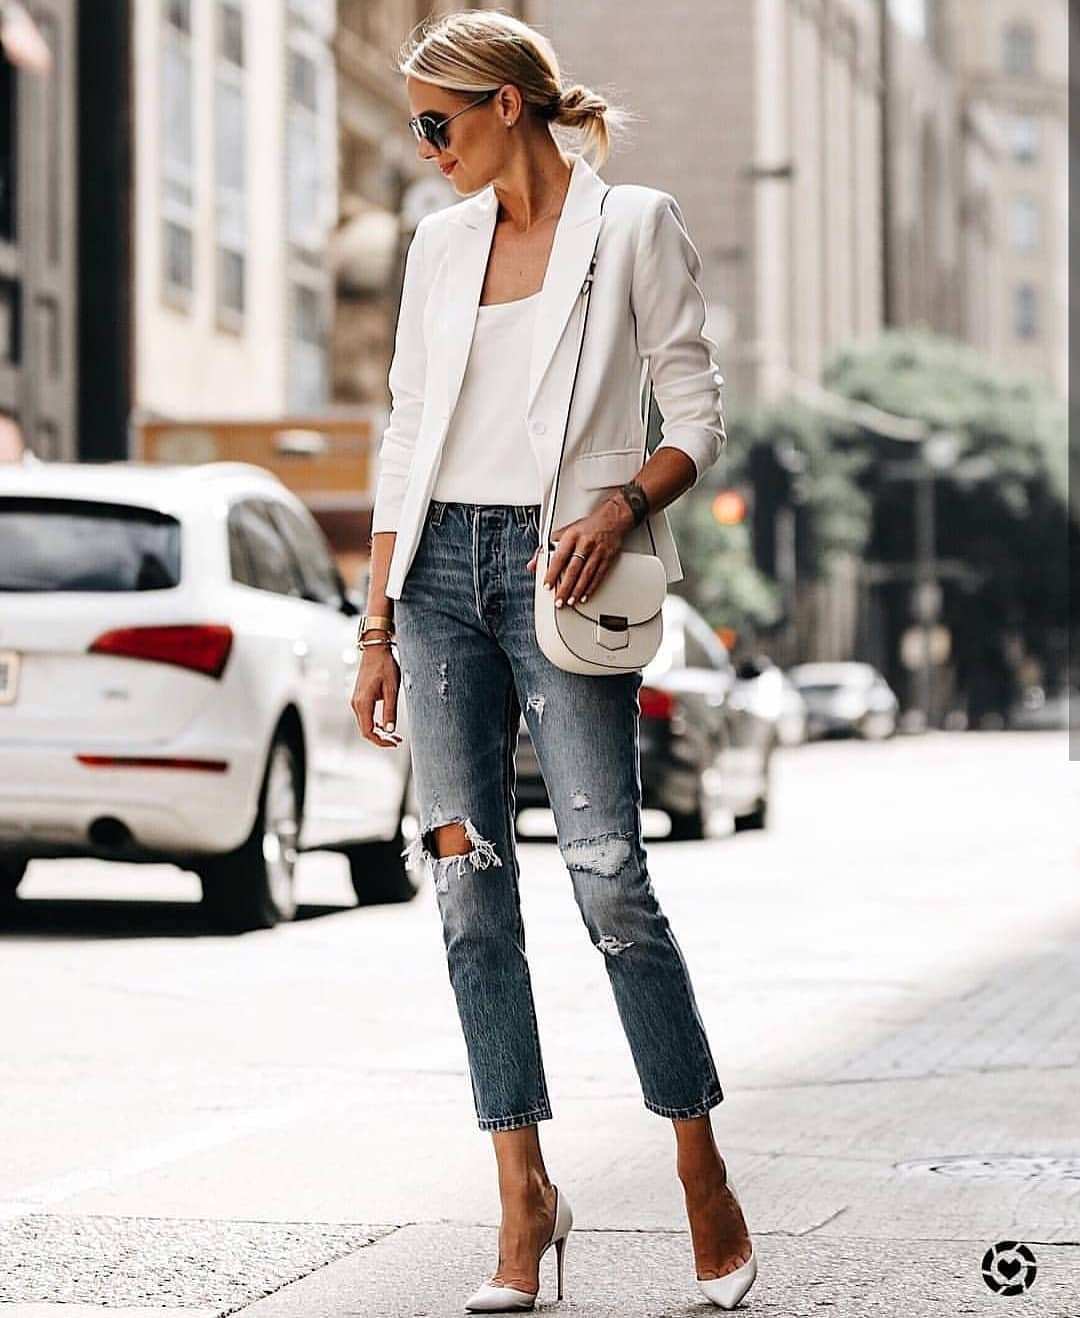 How To Wear White Heeled Pumps This Summer 2019